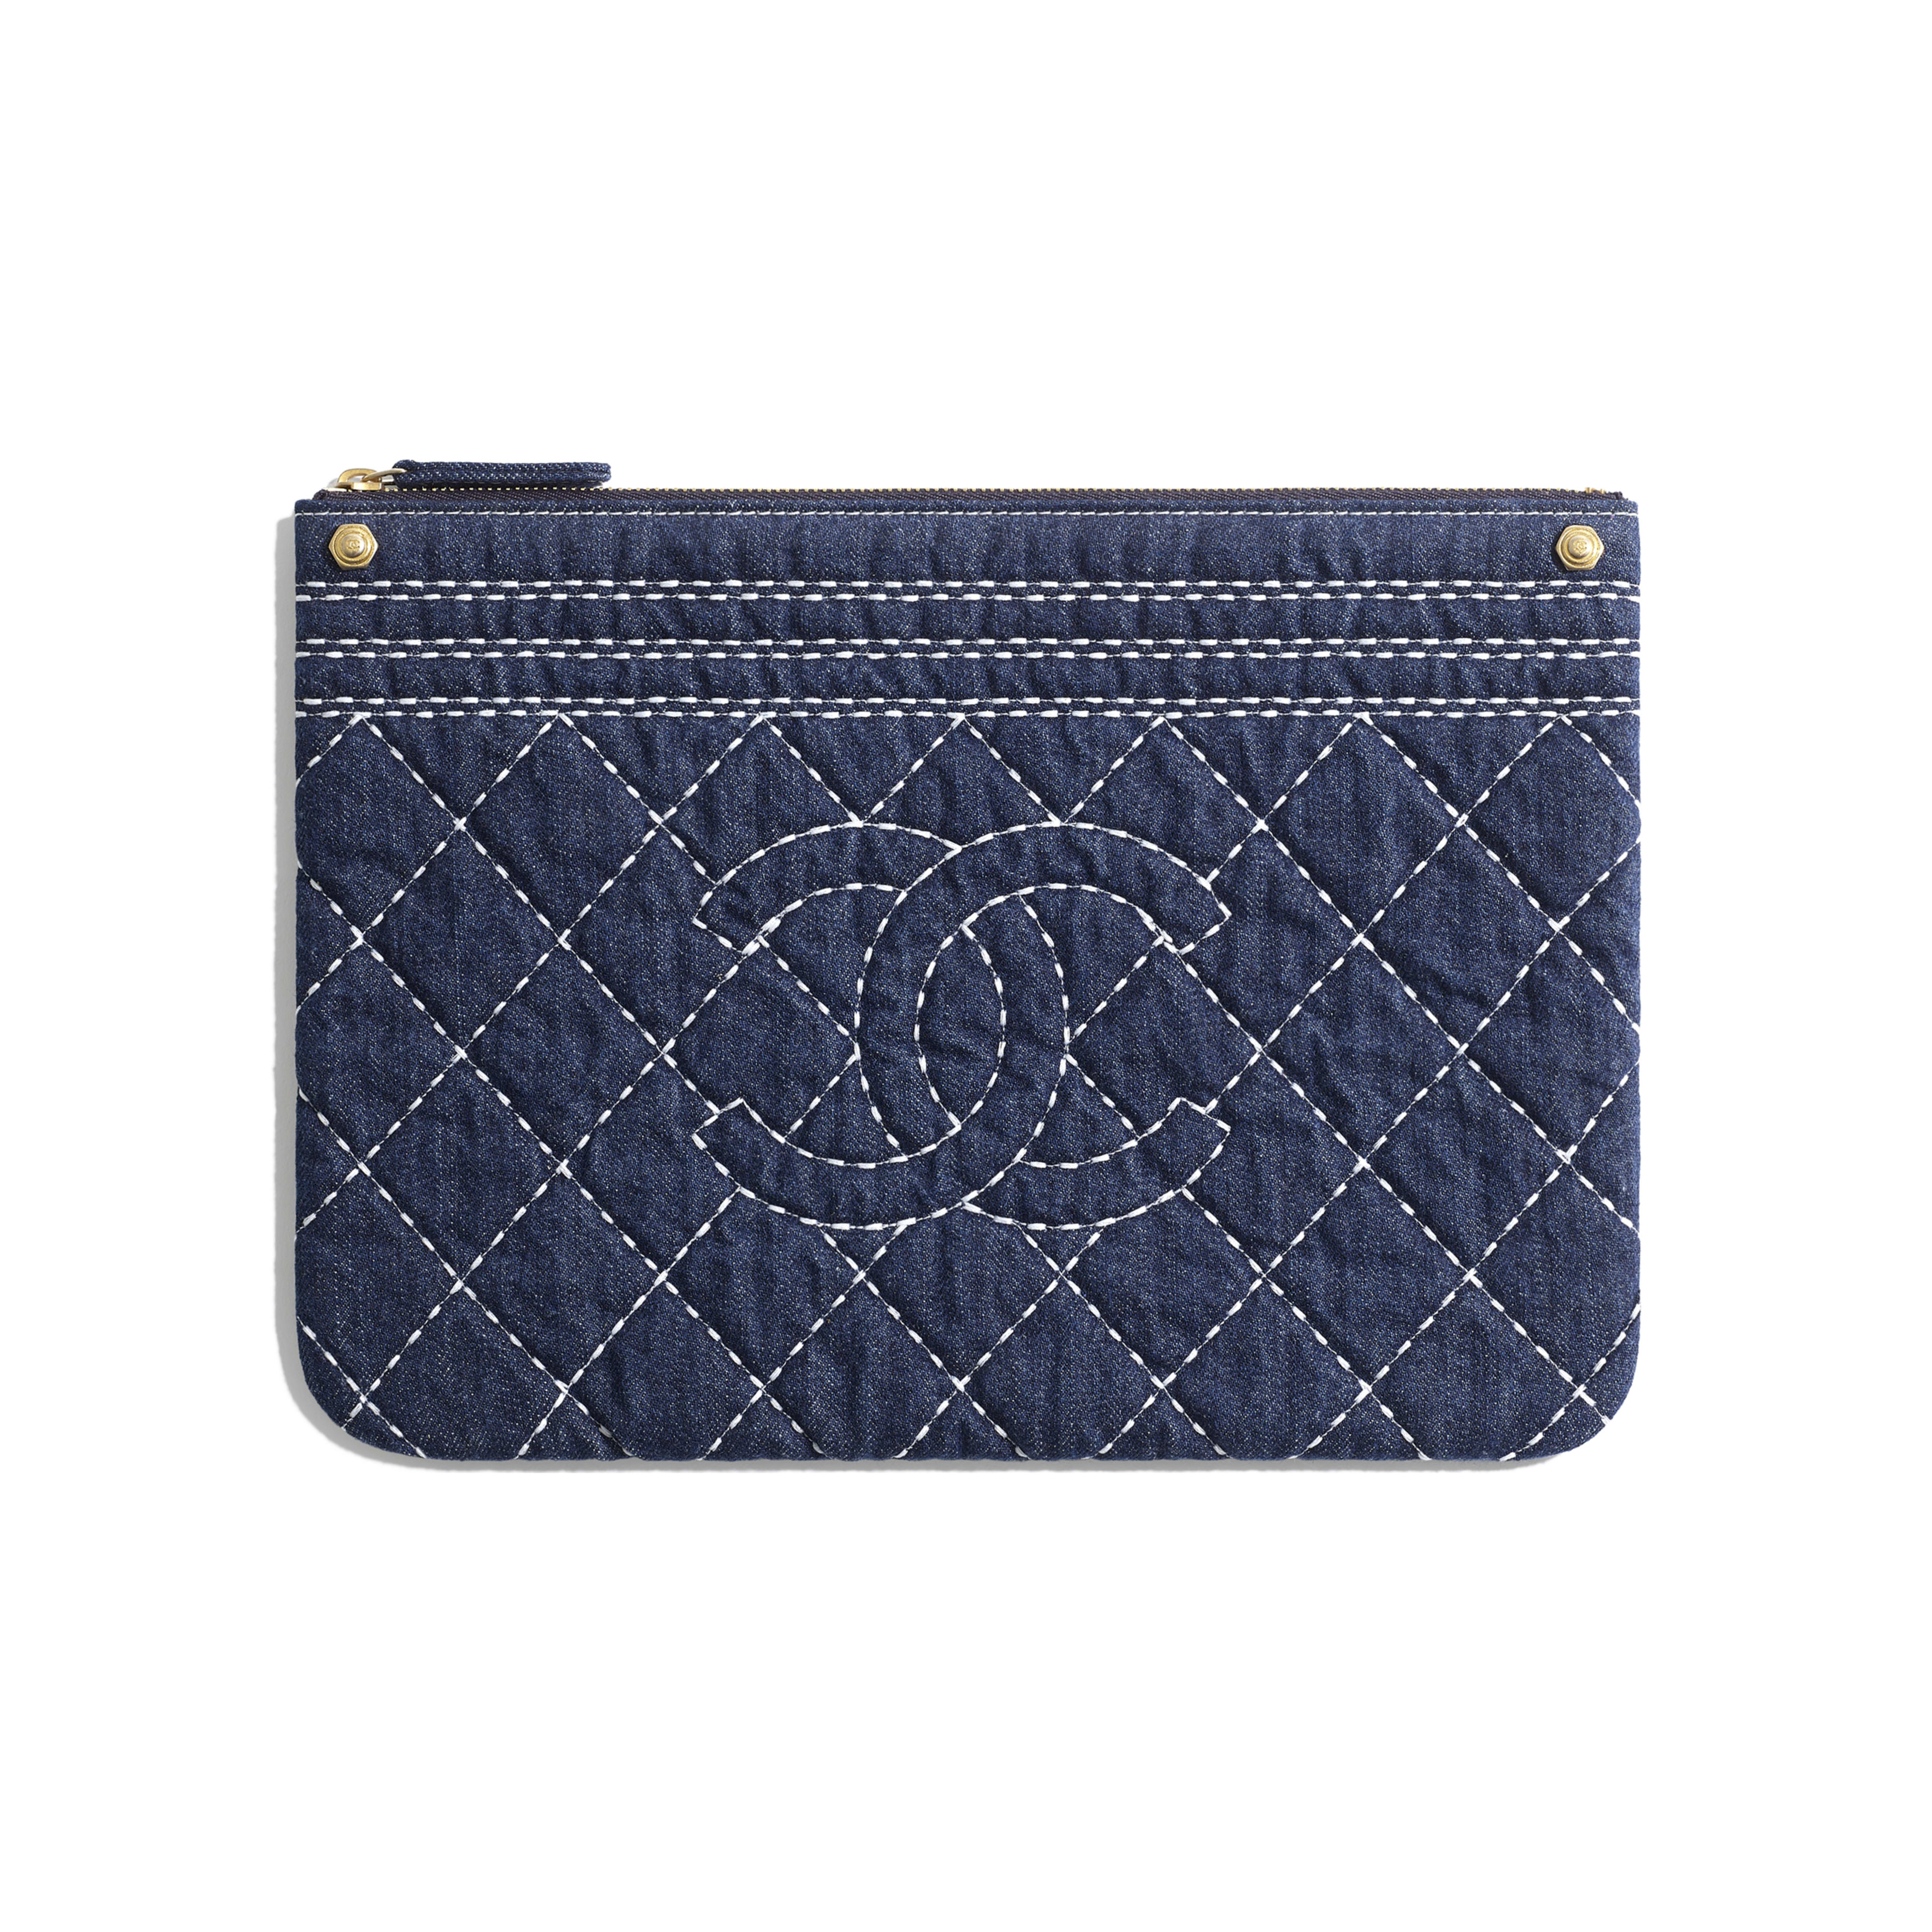 Pouch - Blue - Denim & Gold Metal - Default view - see full sized version